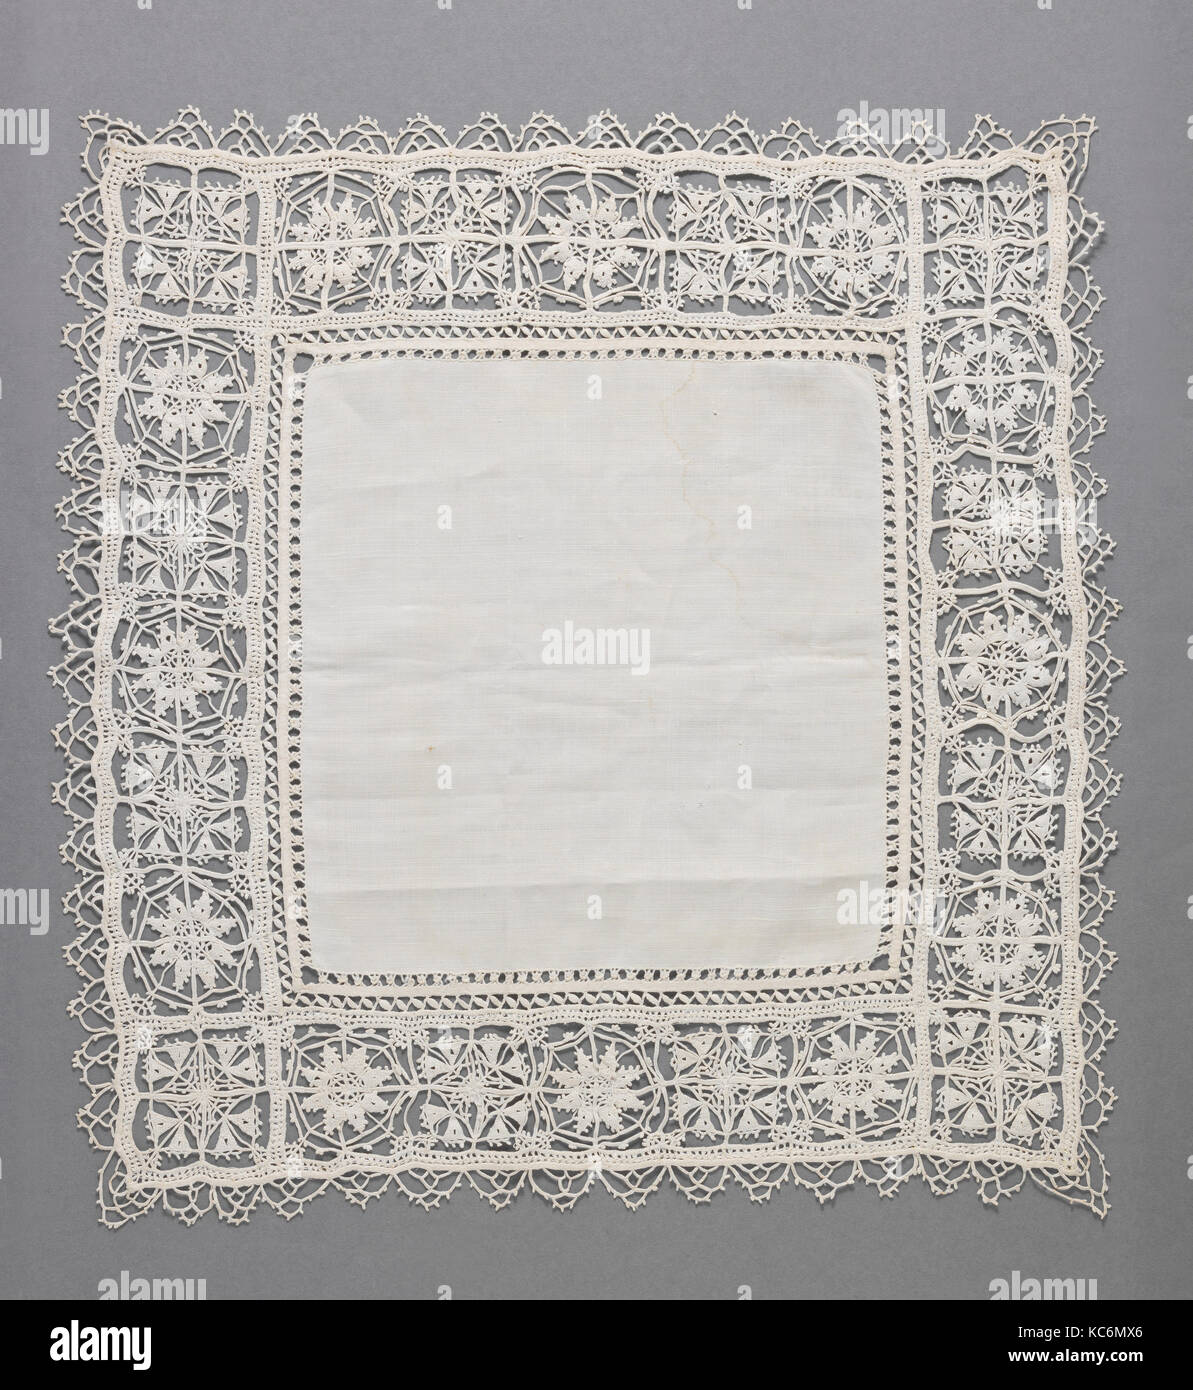 Cover, 17th century, Italian, Linen, needle lace, L. 17 x W. 17 inches, Textiles-Laces - Stock Image